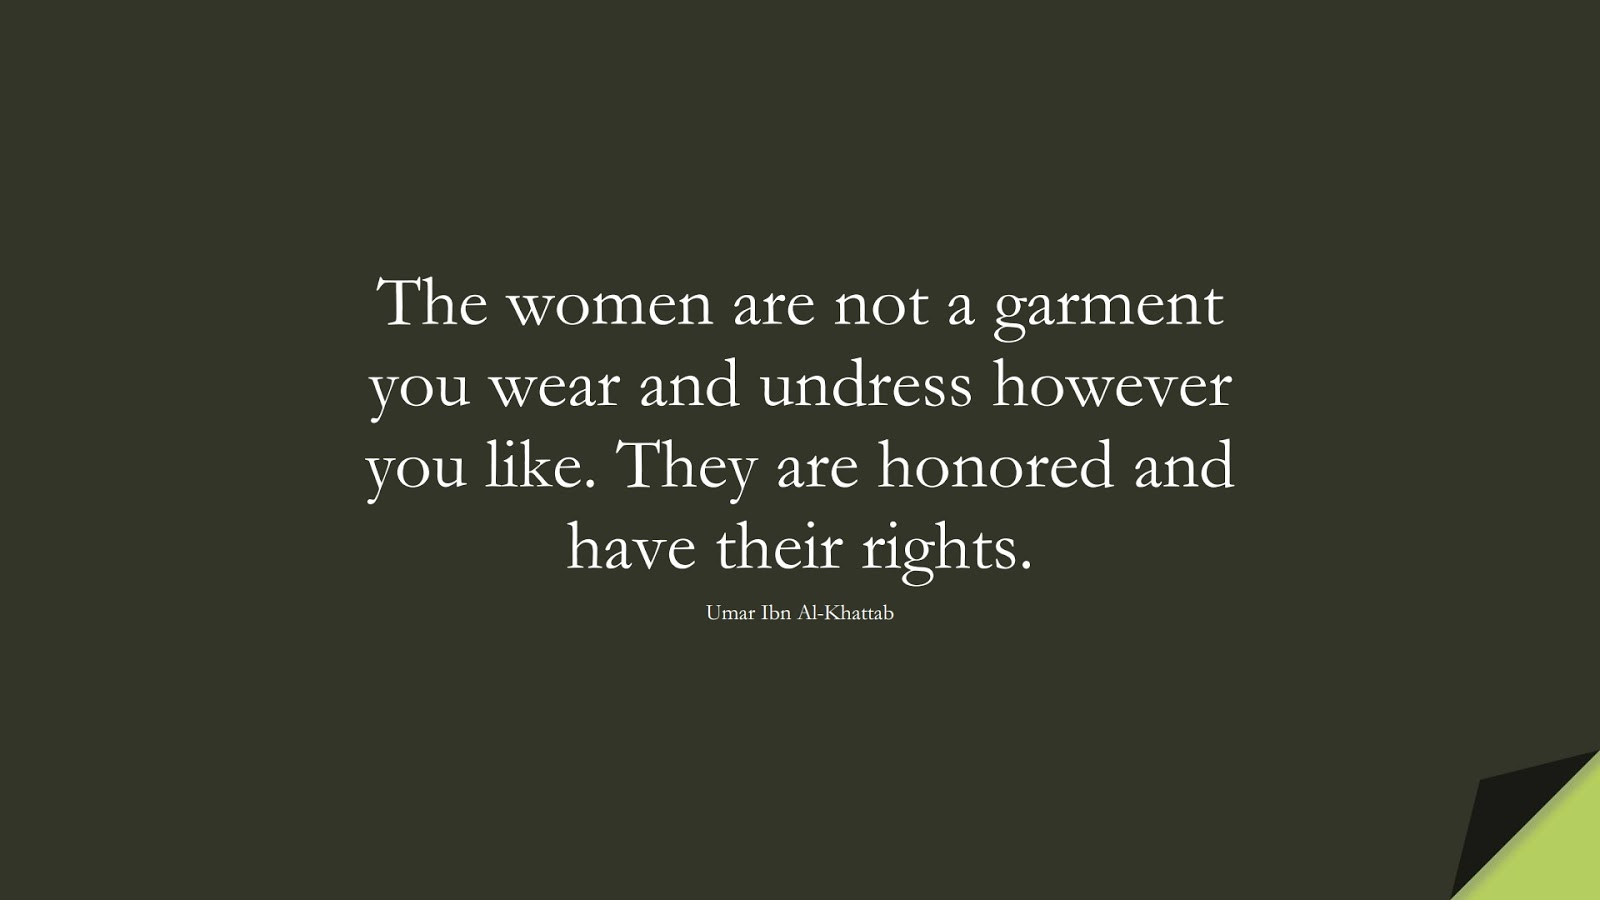 The women are not a garment you wear and undress however you like. They are honored and have their rights. (Umar Ibn Al-Khattab);  #UmarQuotes